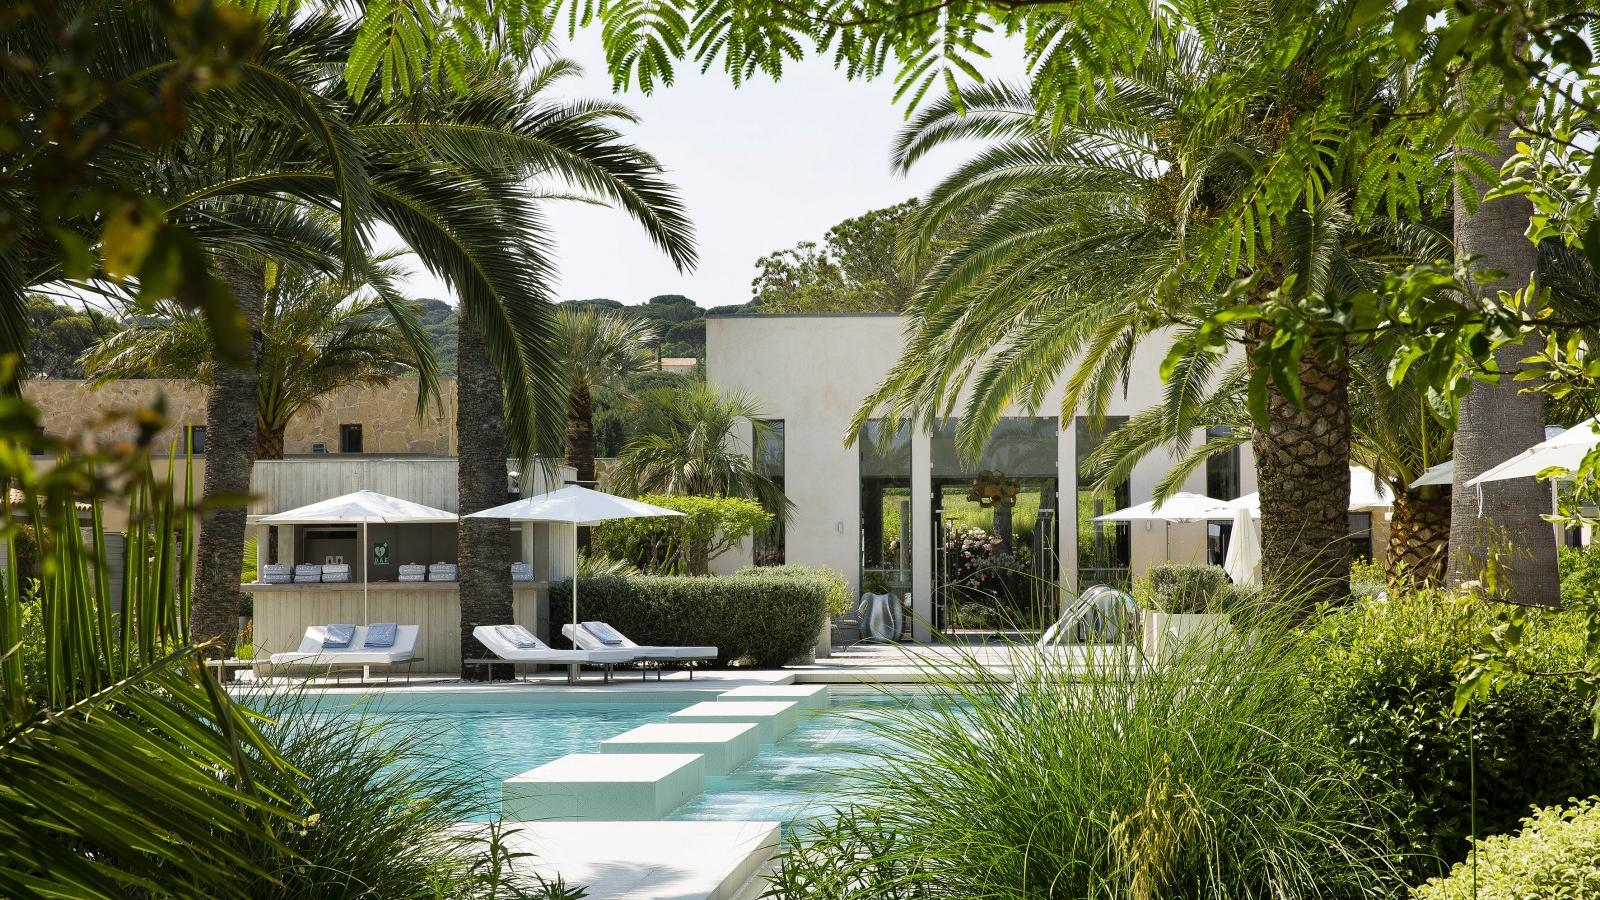 Sezz Saint-Tropez - 4th best luxury hotel in France